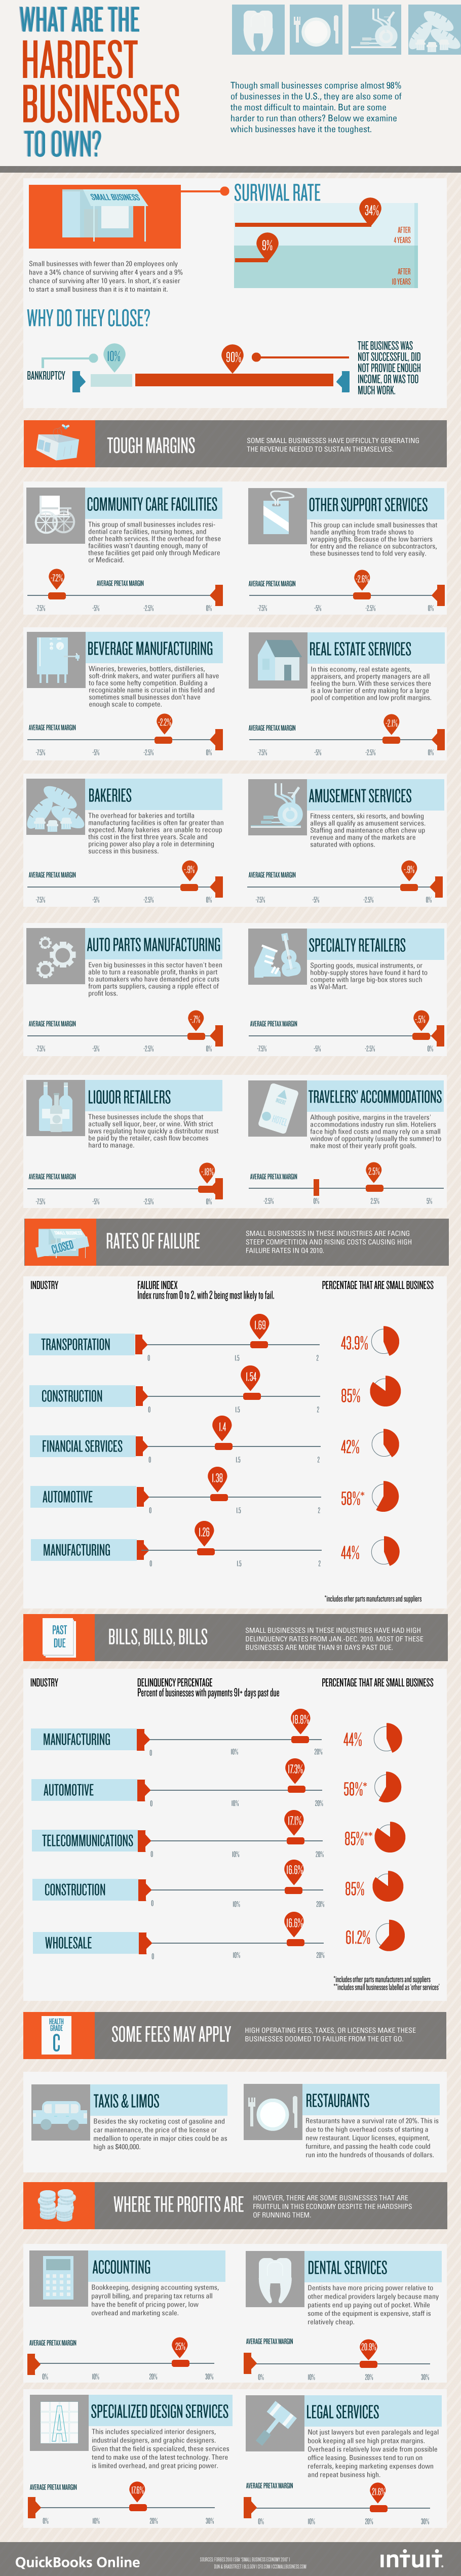 Infographic: What Are The Hardest Businesses To Own?